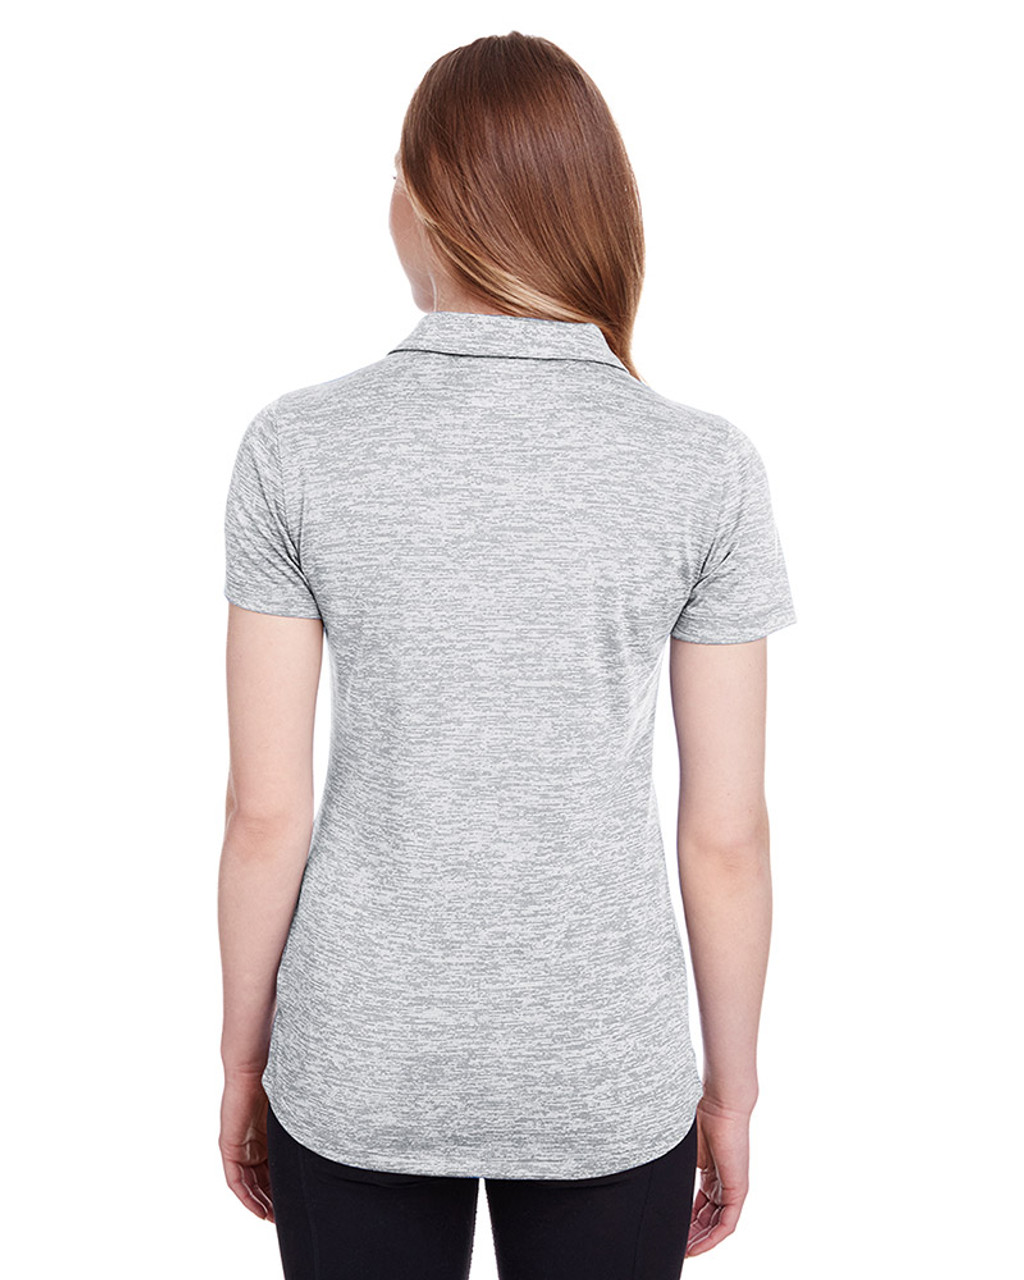 Bright White - back, 596802 Puma Golf Ladies' Icon Heather Polo | Blankclothing.ca